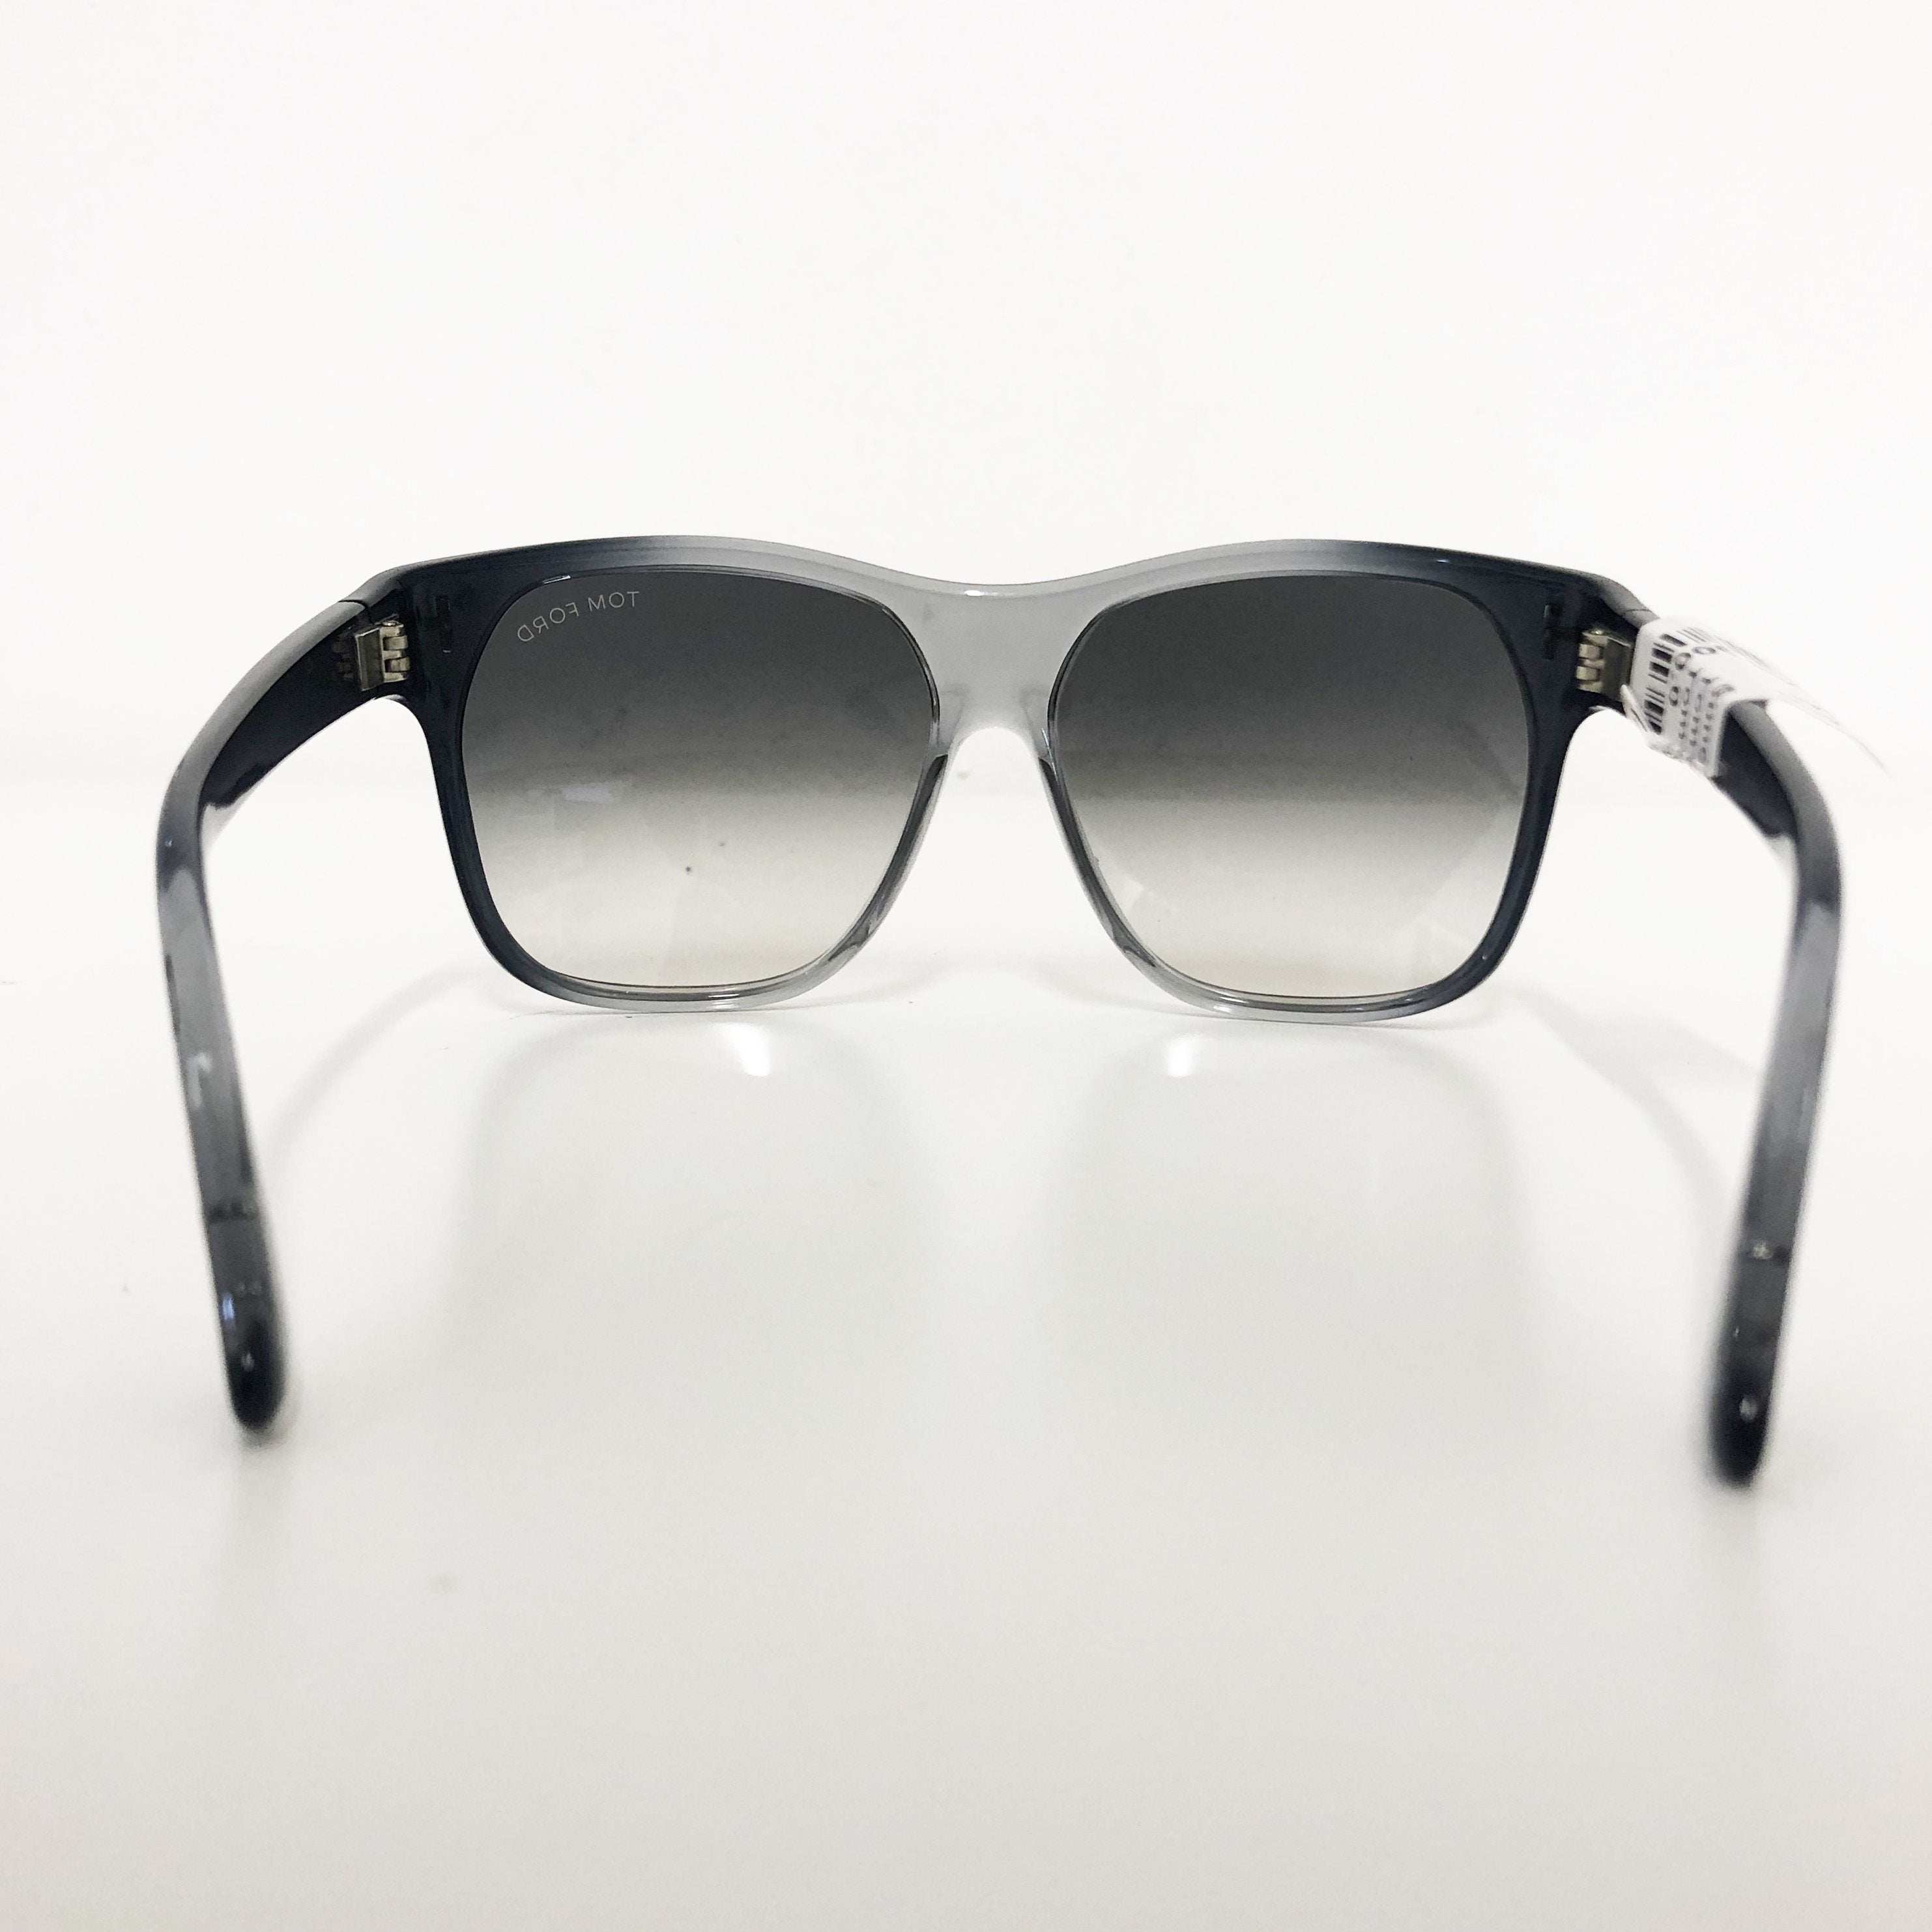 Tom Ford Grey and Black Gradient Sunglasses